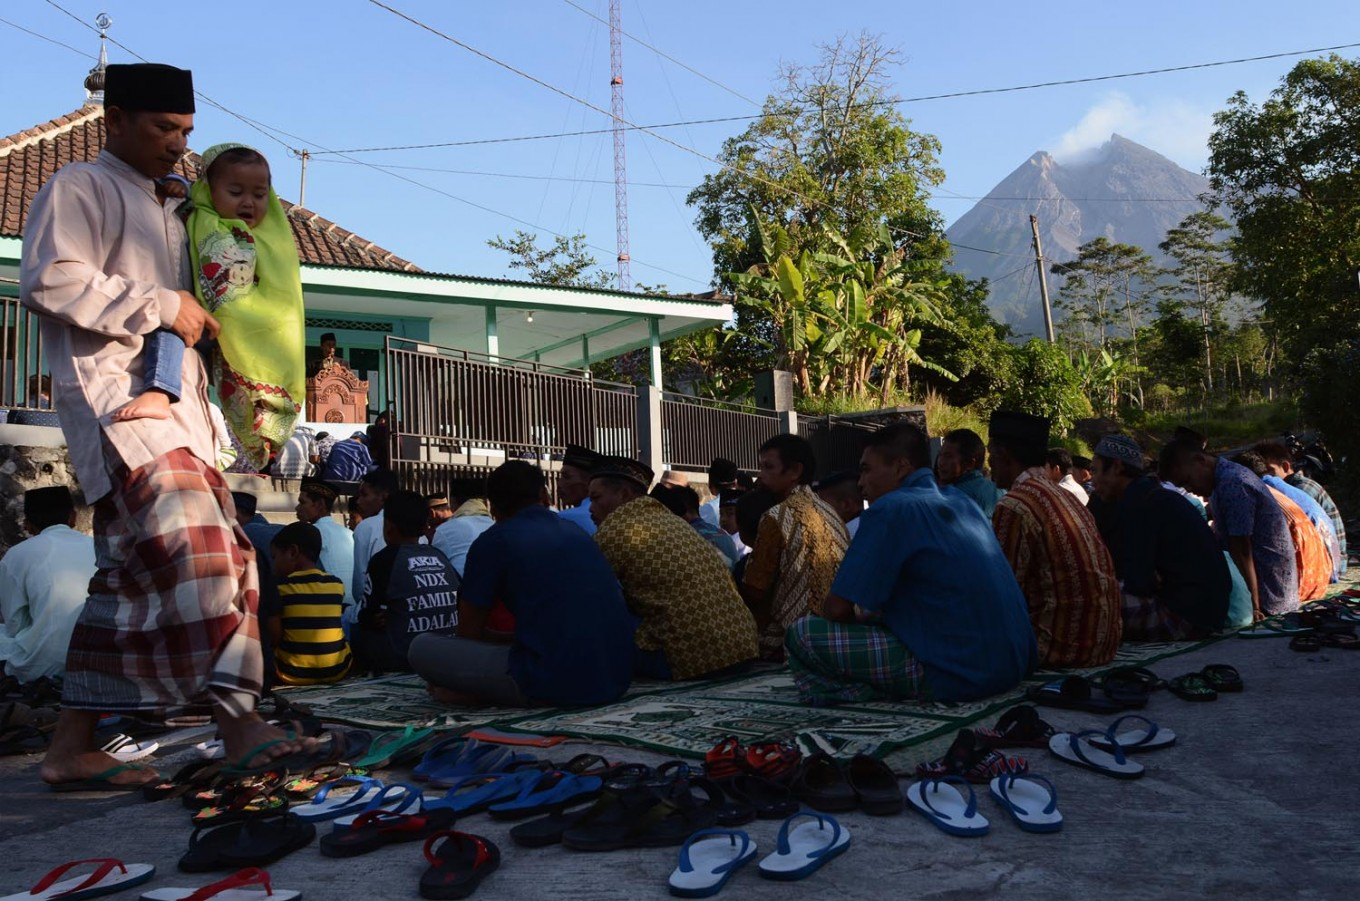 Residents of Balerante, Kemalang, Klaten regency in Central Java attend Friday prayers on June 15, 2018 in the front yard of Al Qodar Mosque. After praying, the villagers, who live on the foot of Mount Merapi, visit relatives' houses. JP/Magnus Hendratmo